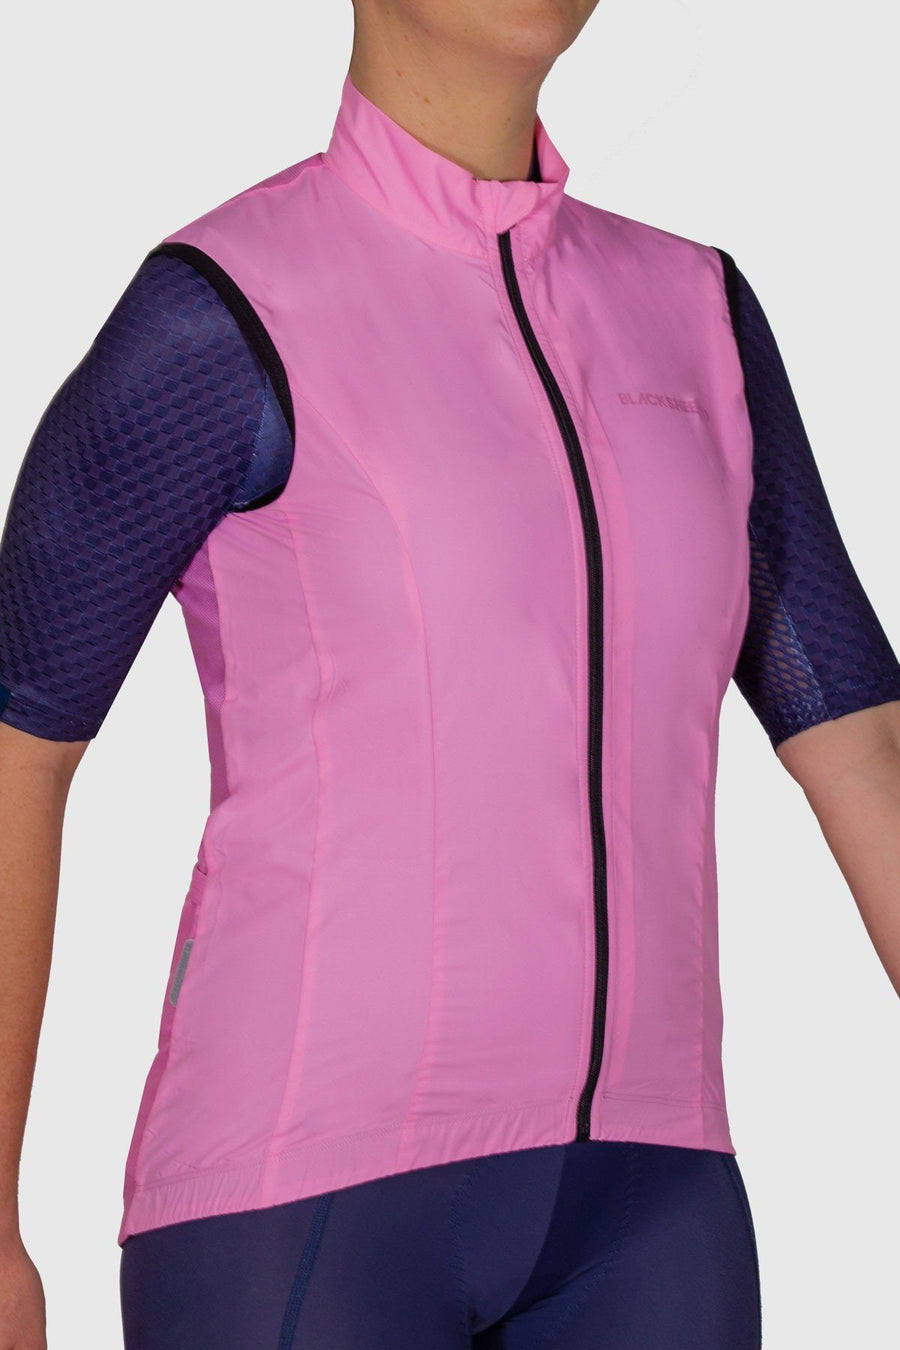 Euro Collection Women's Pink Wind Vest